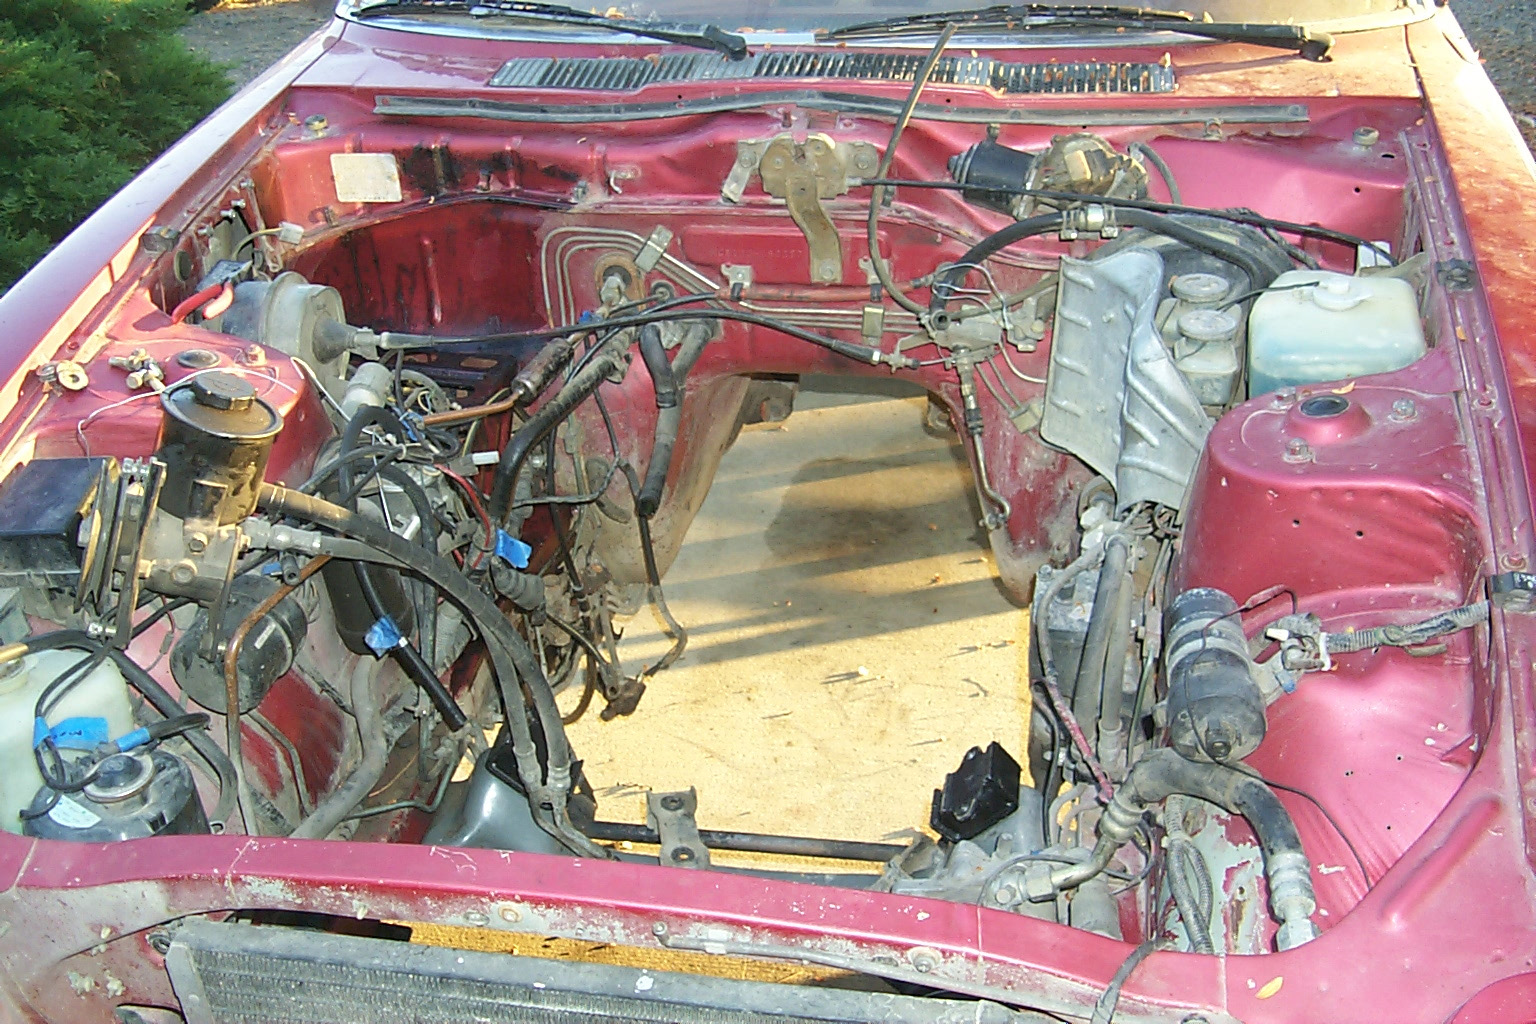 280zx Wiring Harness Diagram 280z Datsun Nissan Turbo Engine Swap280zx 7